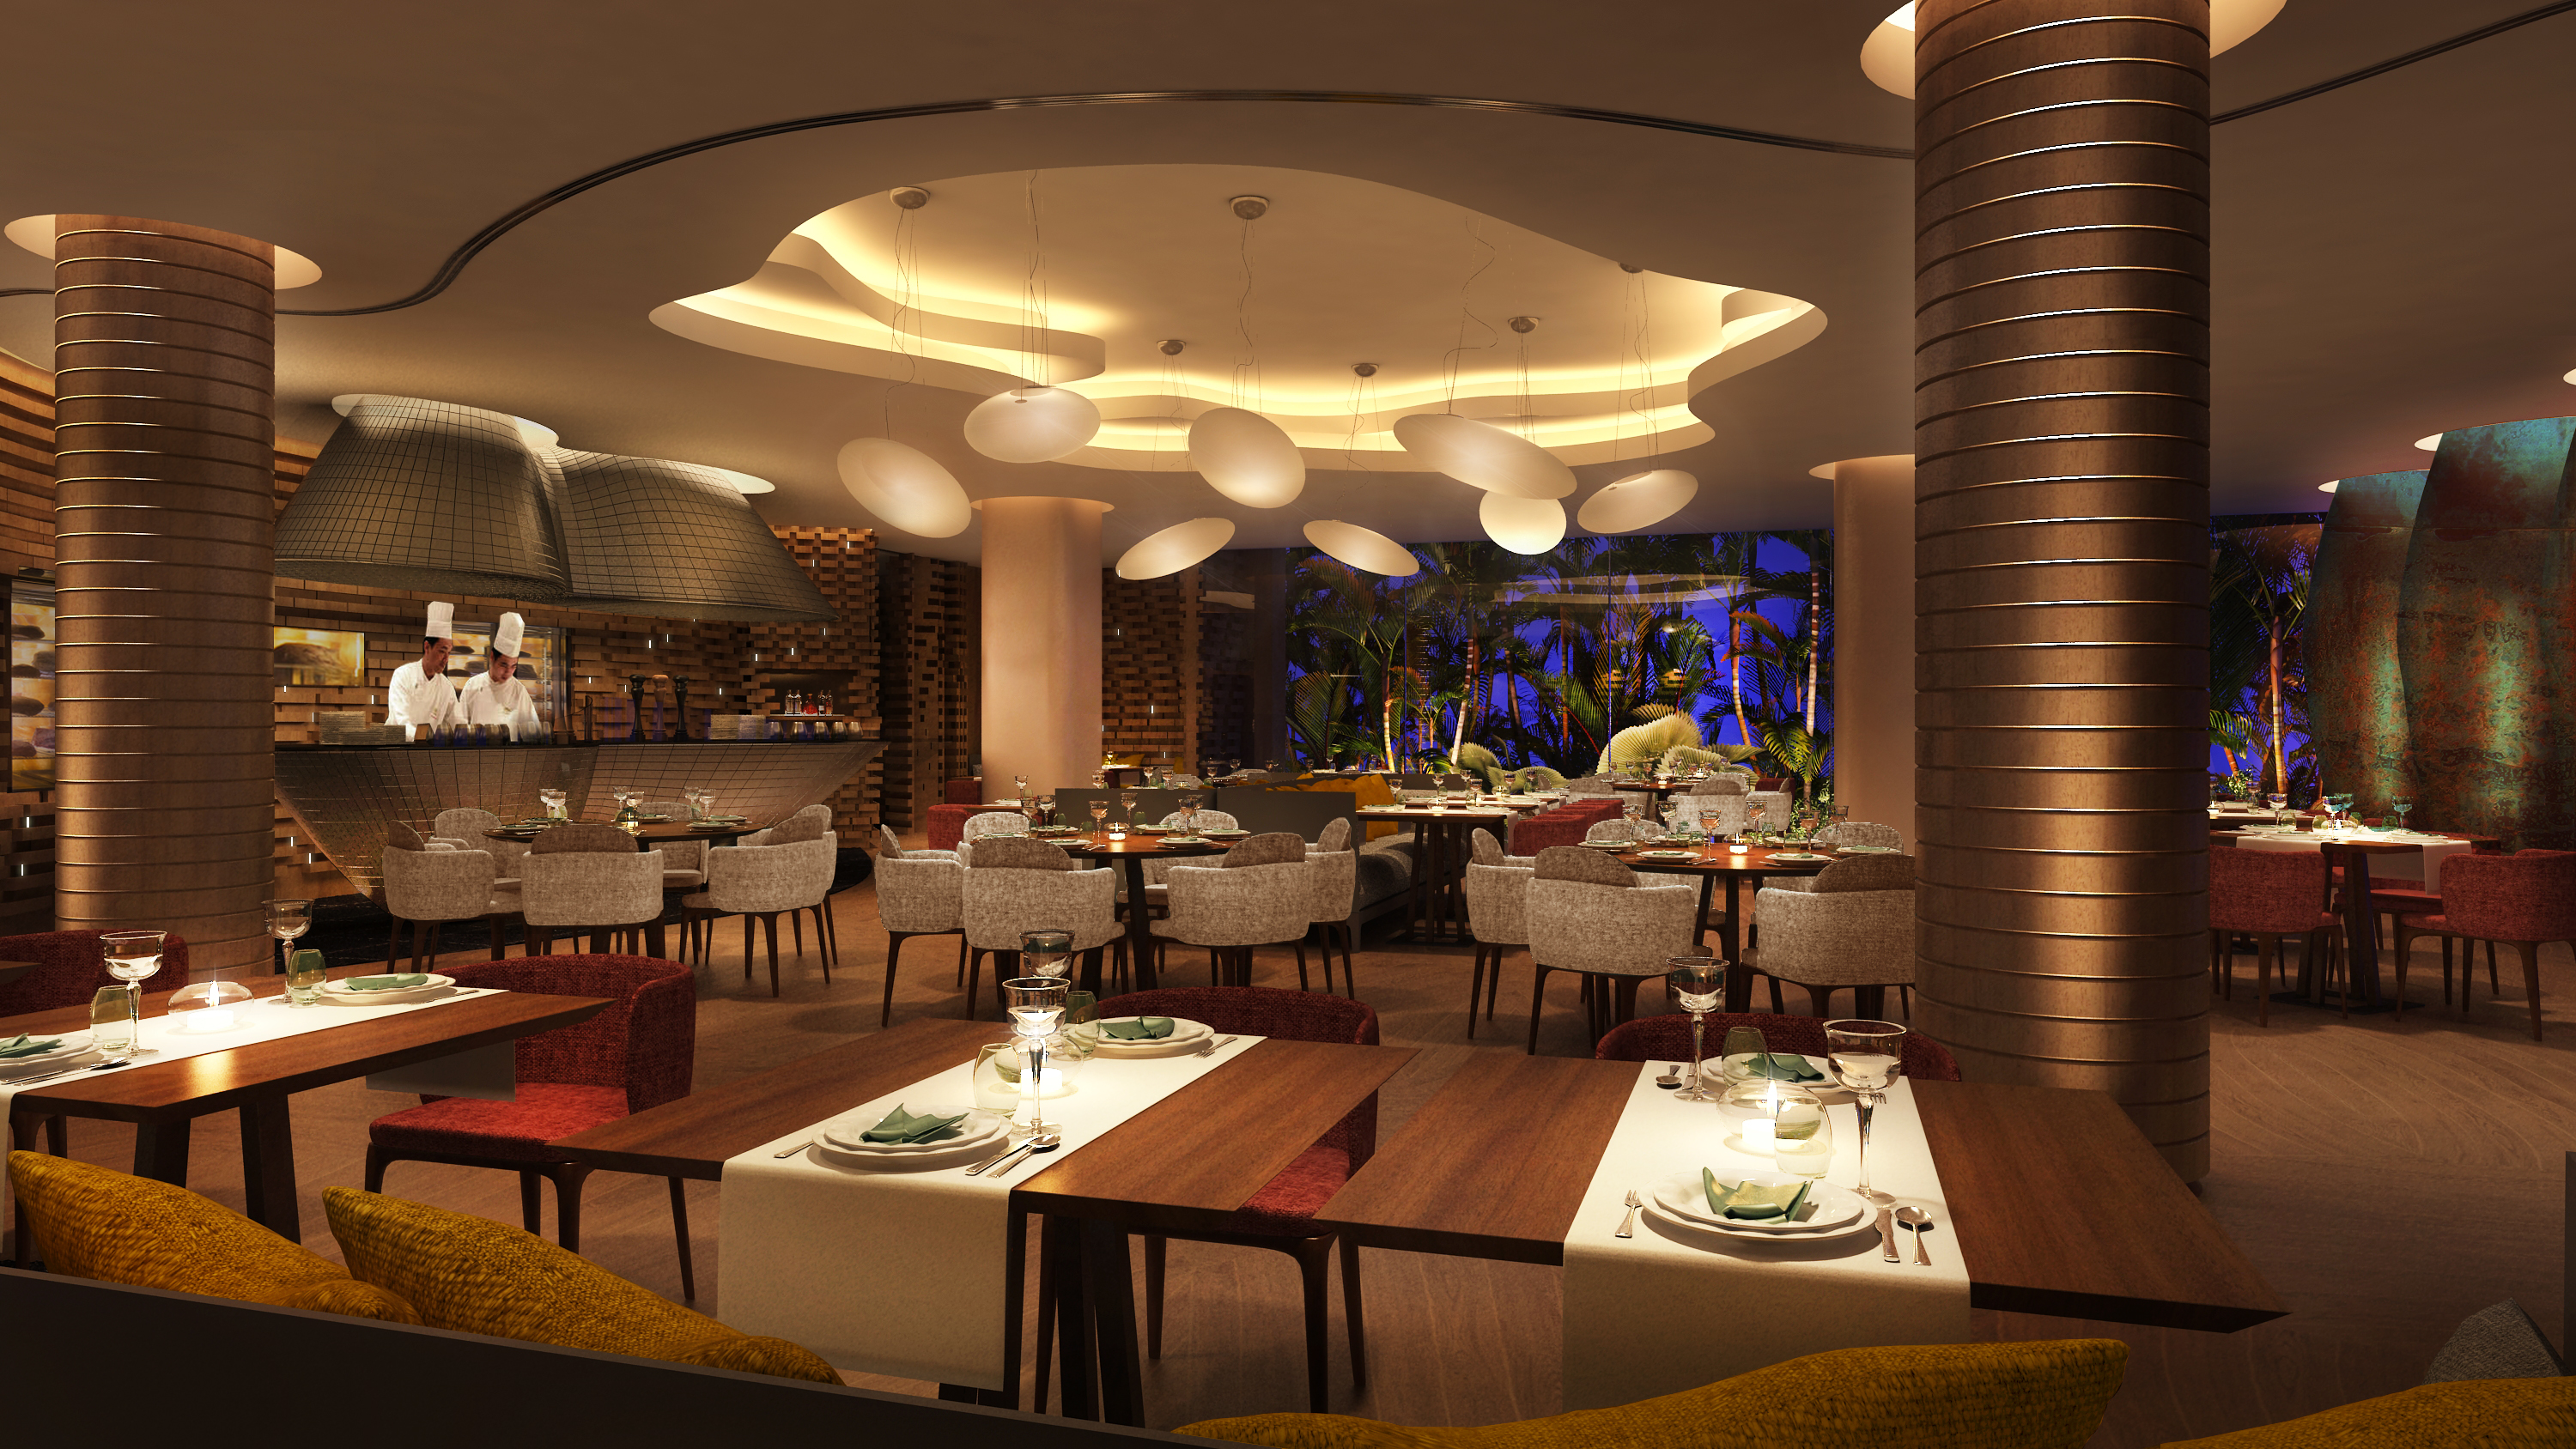 Lush, modern designs at the newly-opened Hilton Singapore's Opus Bar and Grill.